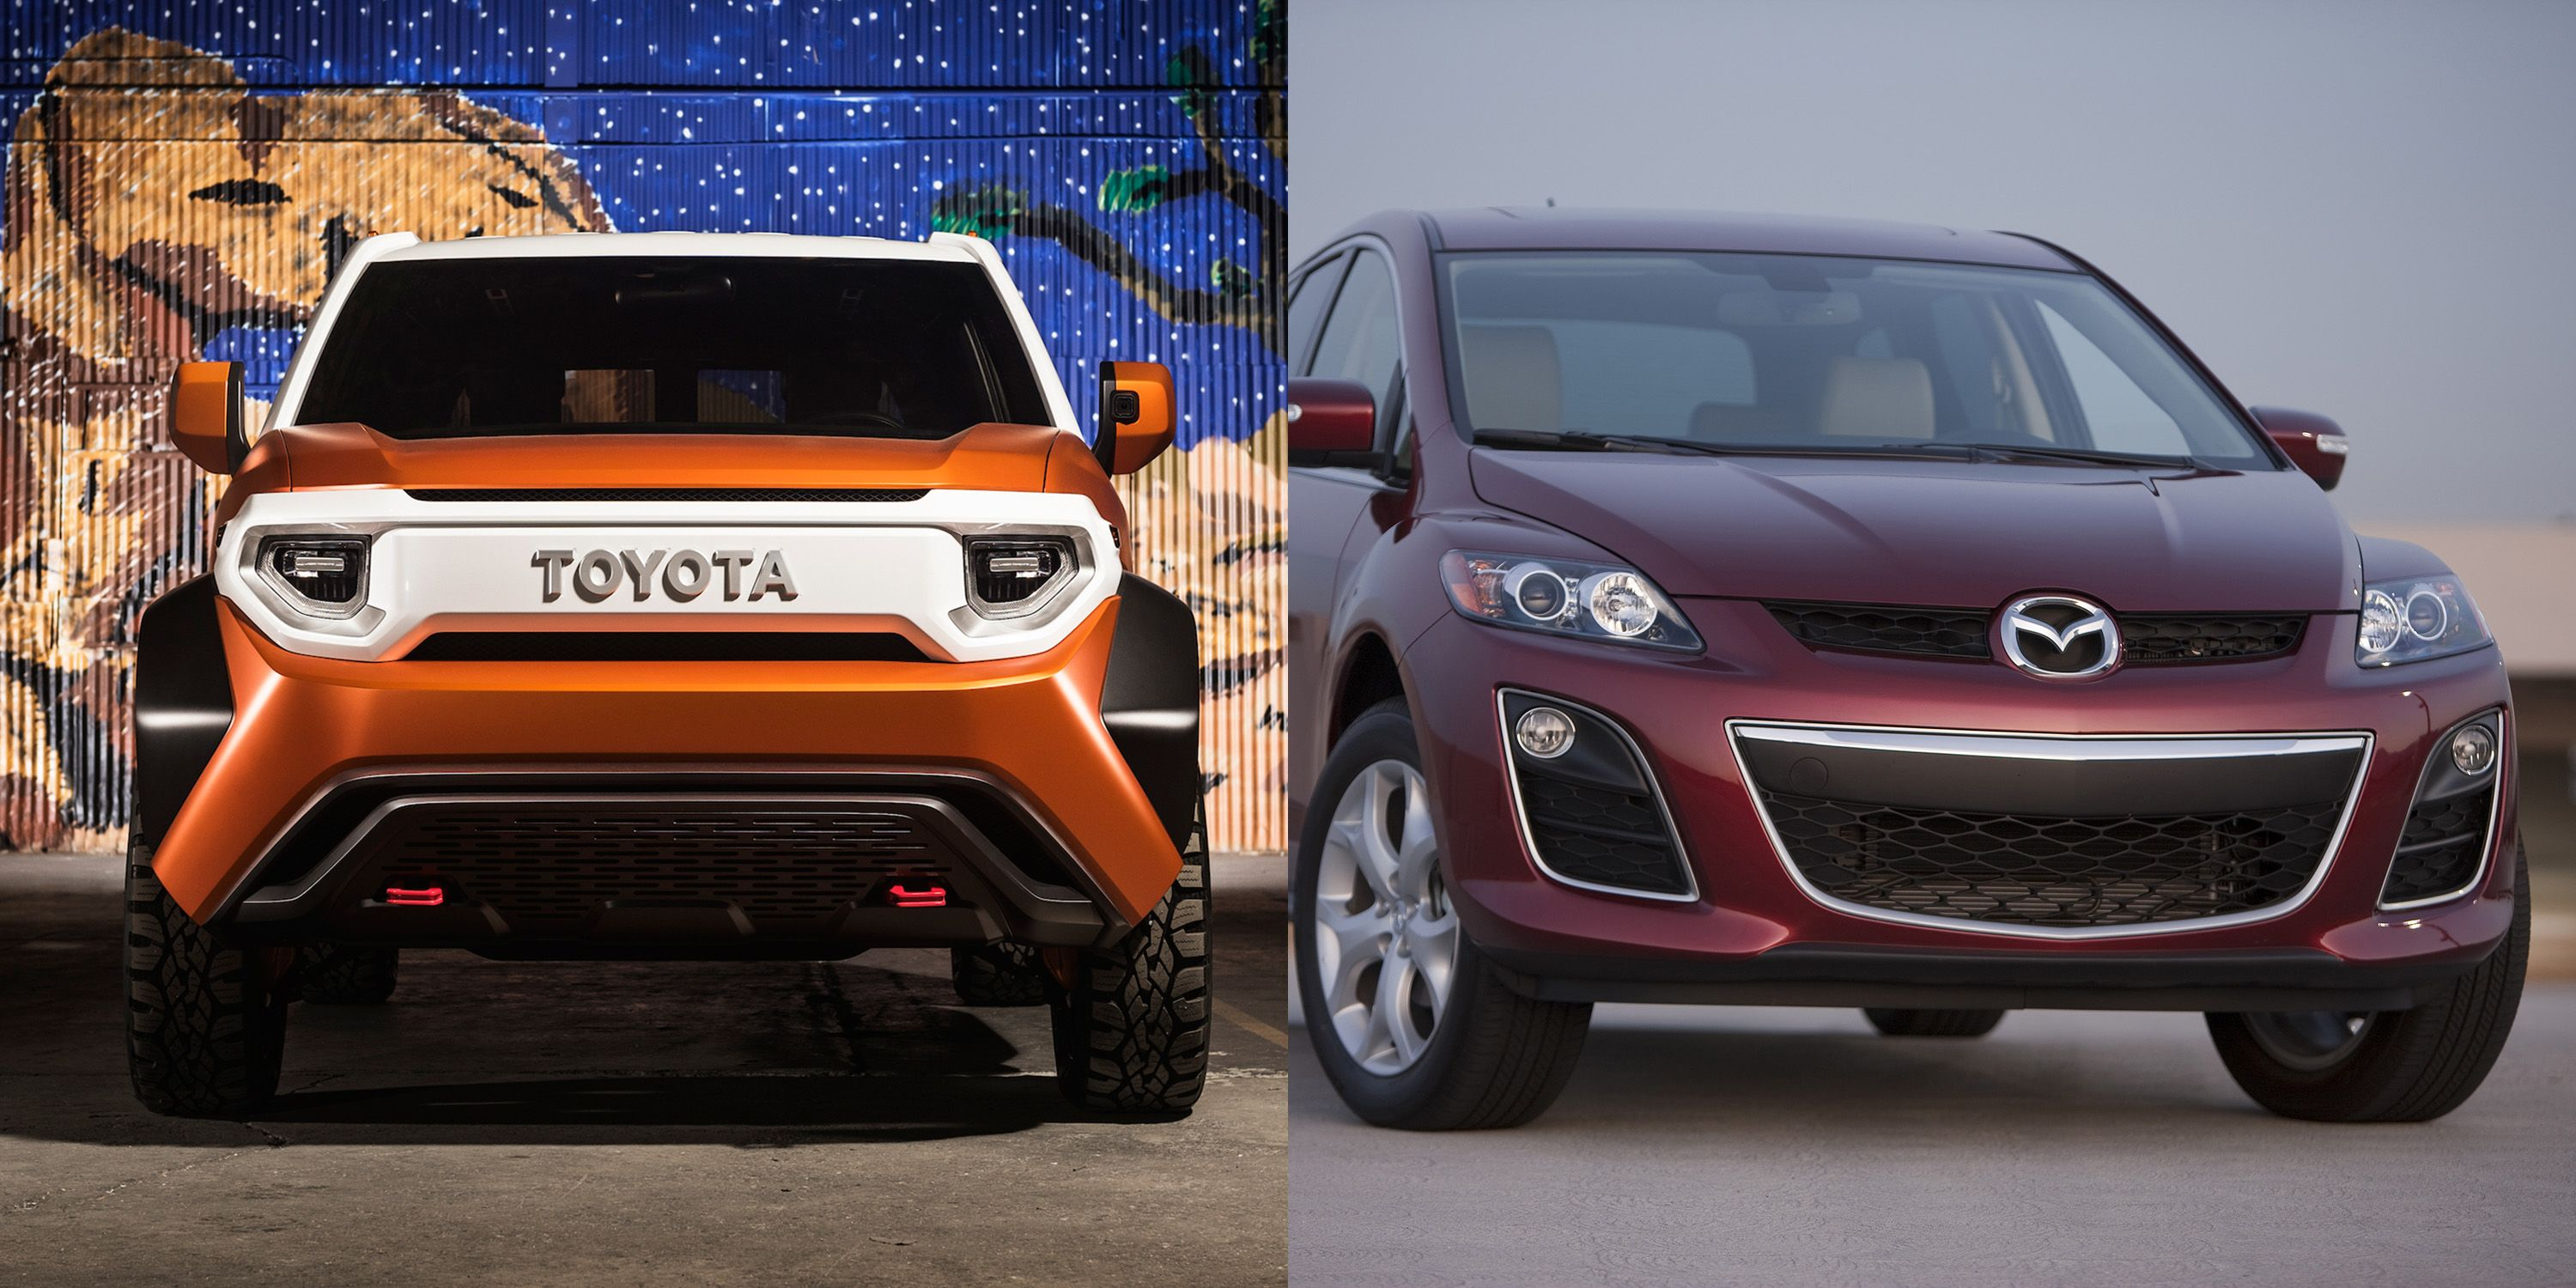 Toyota And Mazda Suvs Built In Alabama Will Share Components